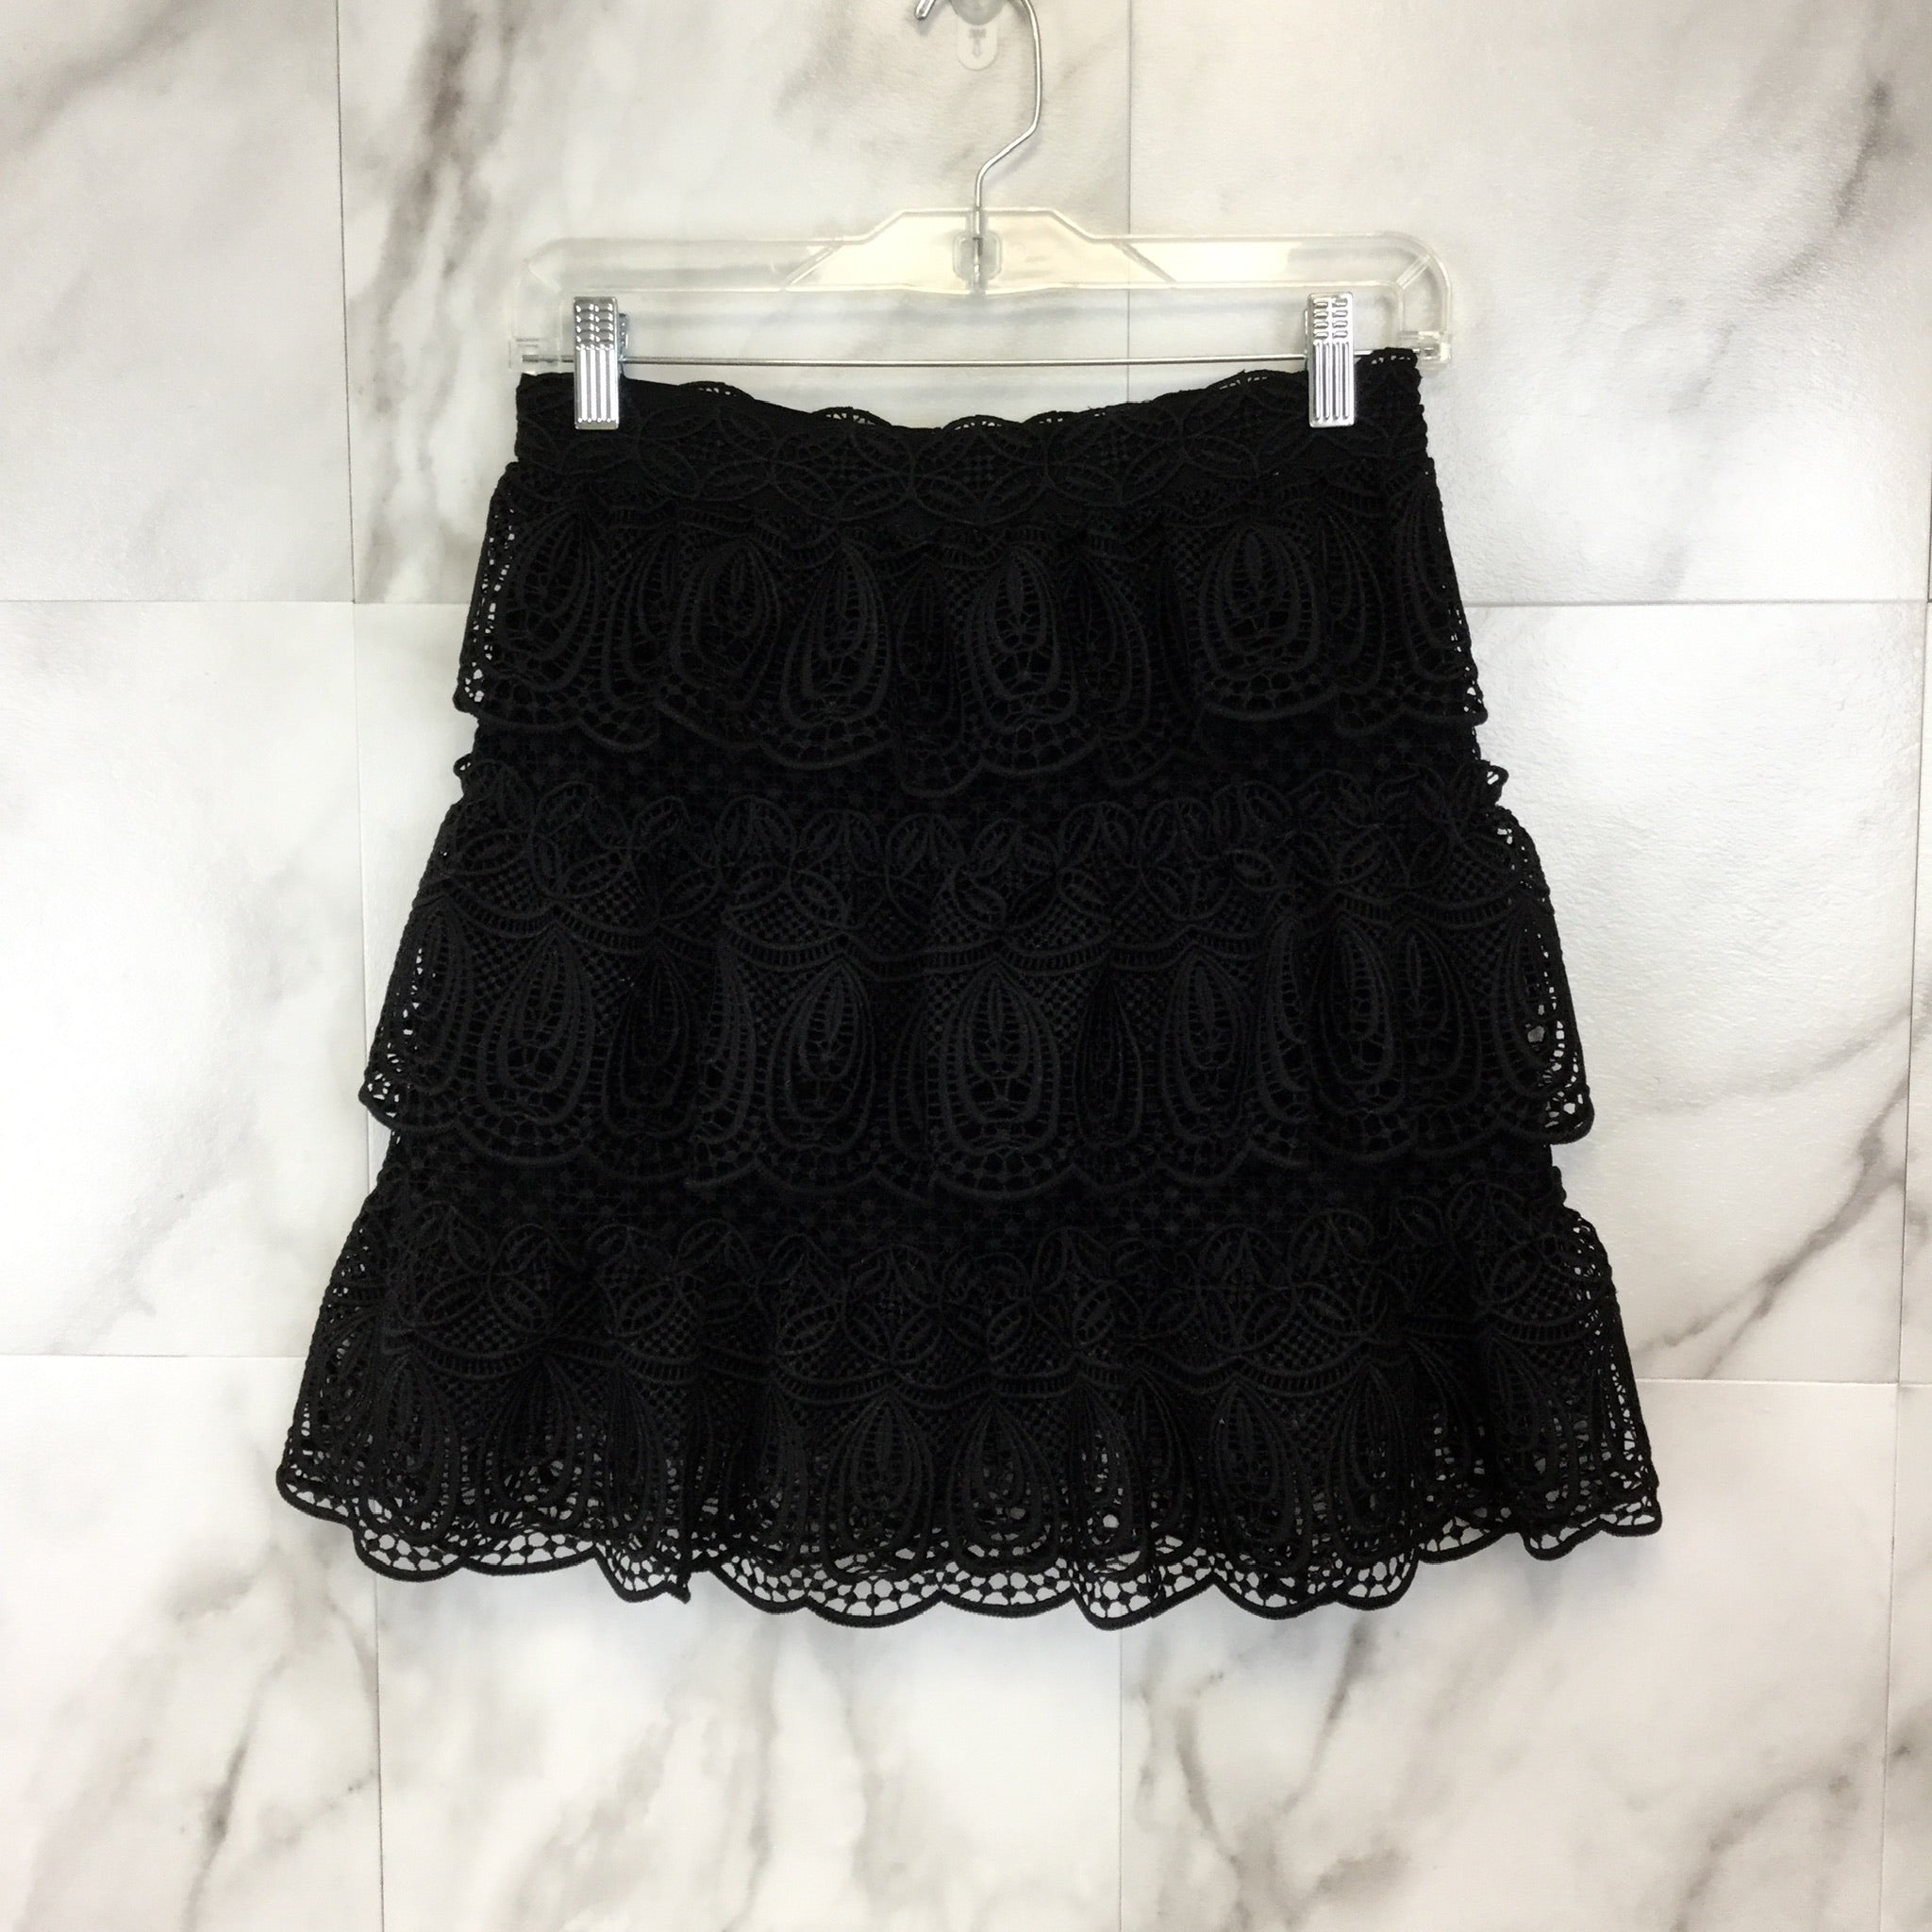 Self-Portrait Lace Peplum Skirt - Size 4